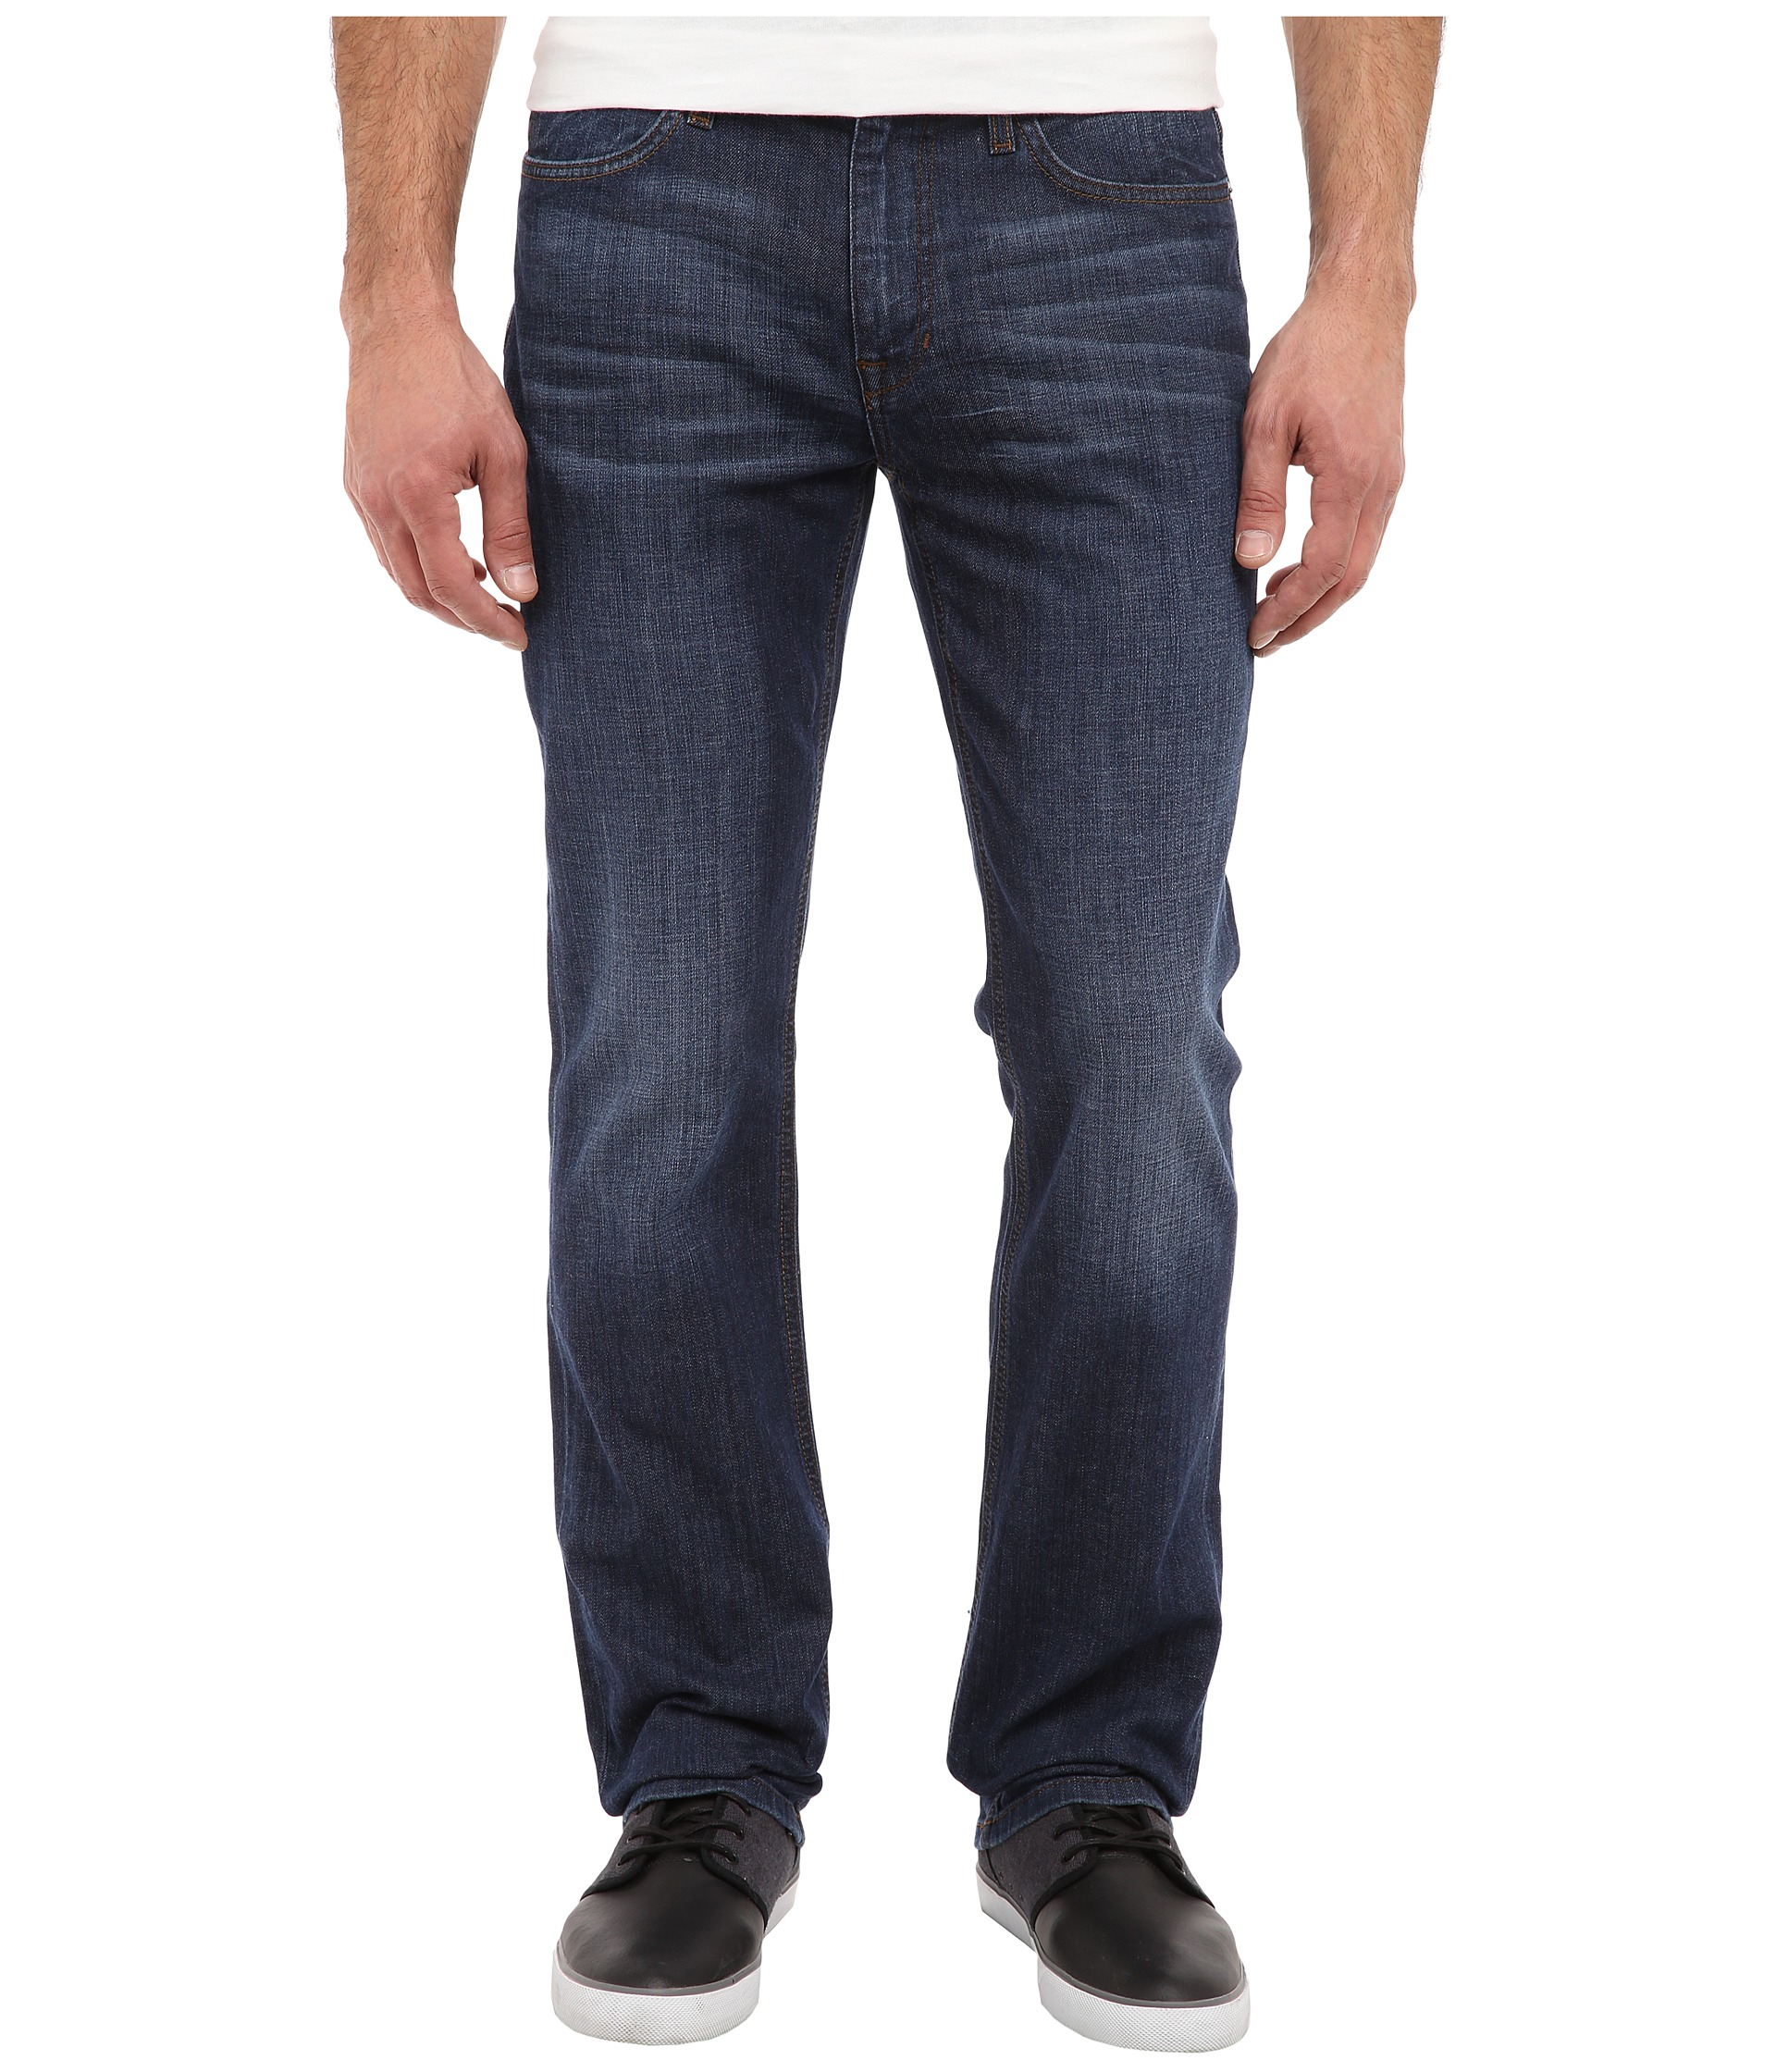 Joe's Jeans Classic Straight in Ivo - Zappos.com Free ... Joes Jeans Mens